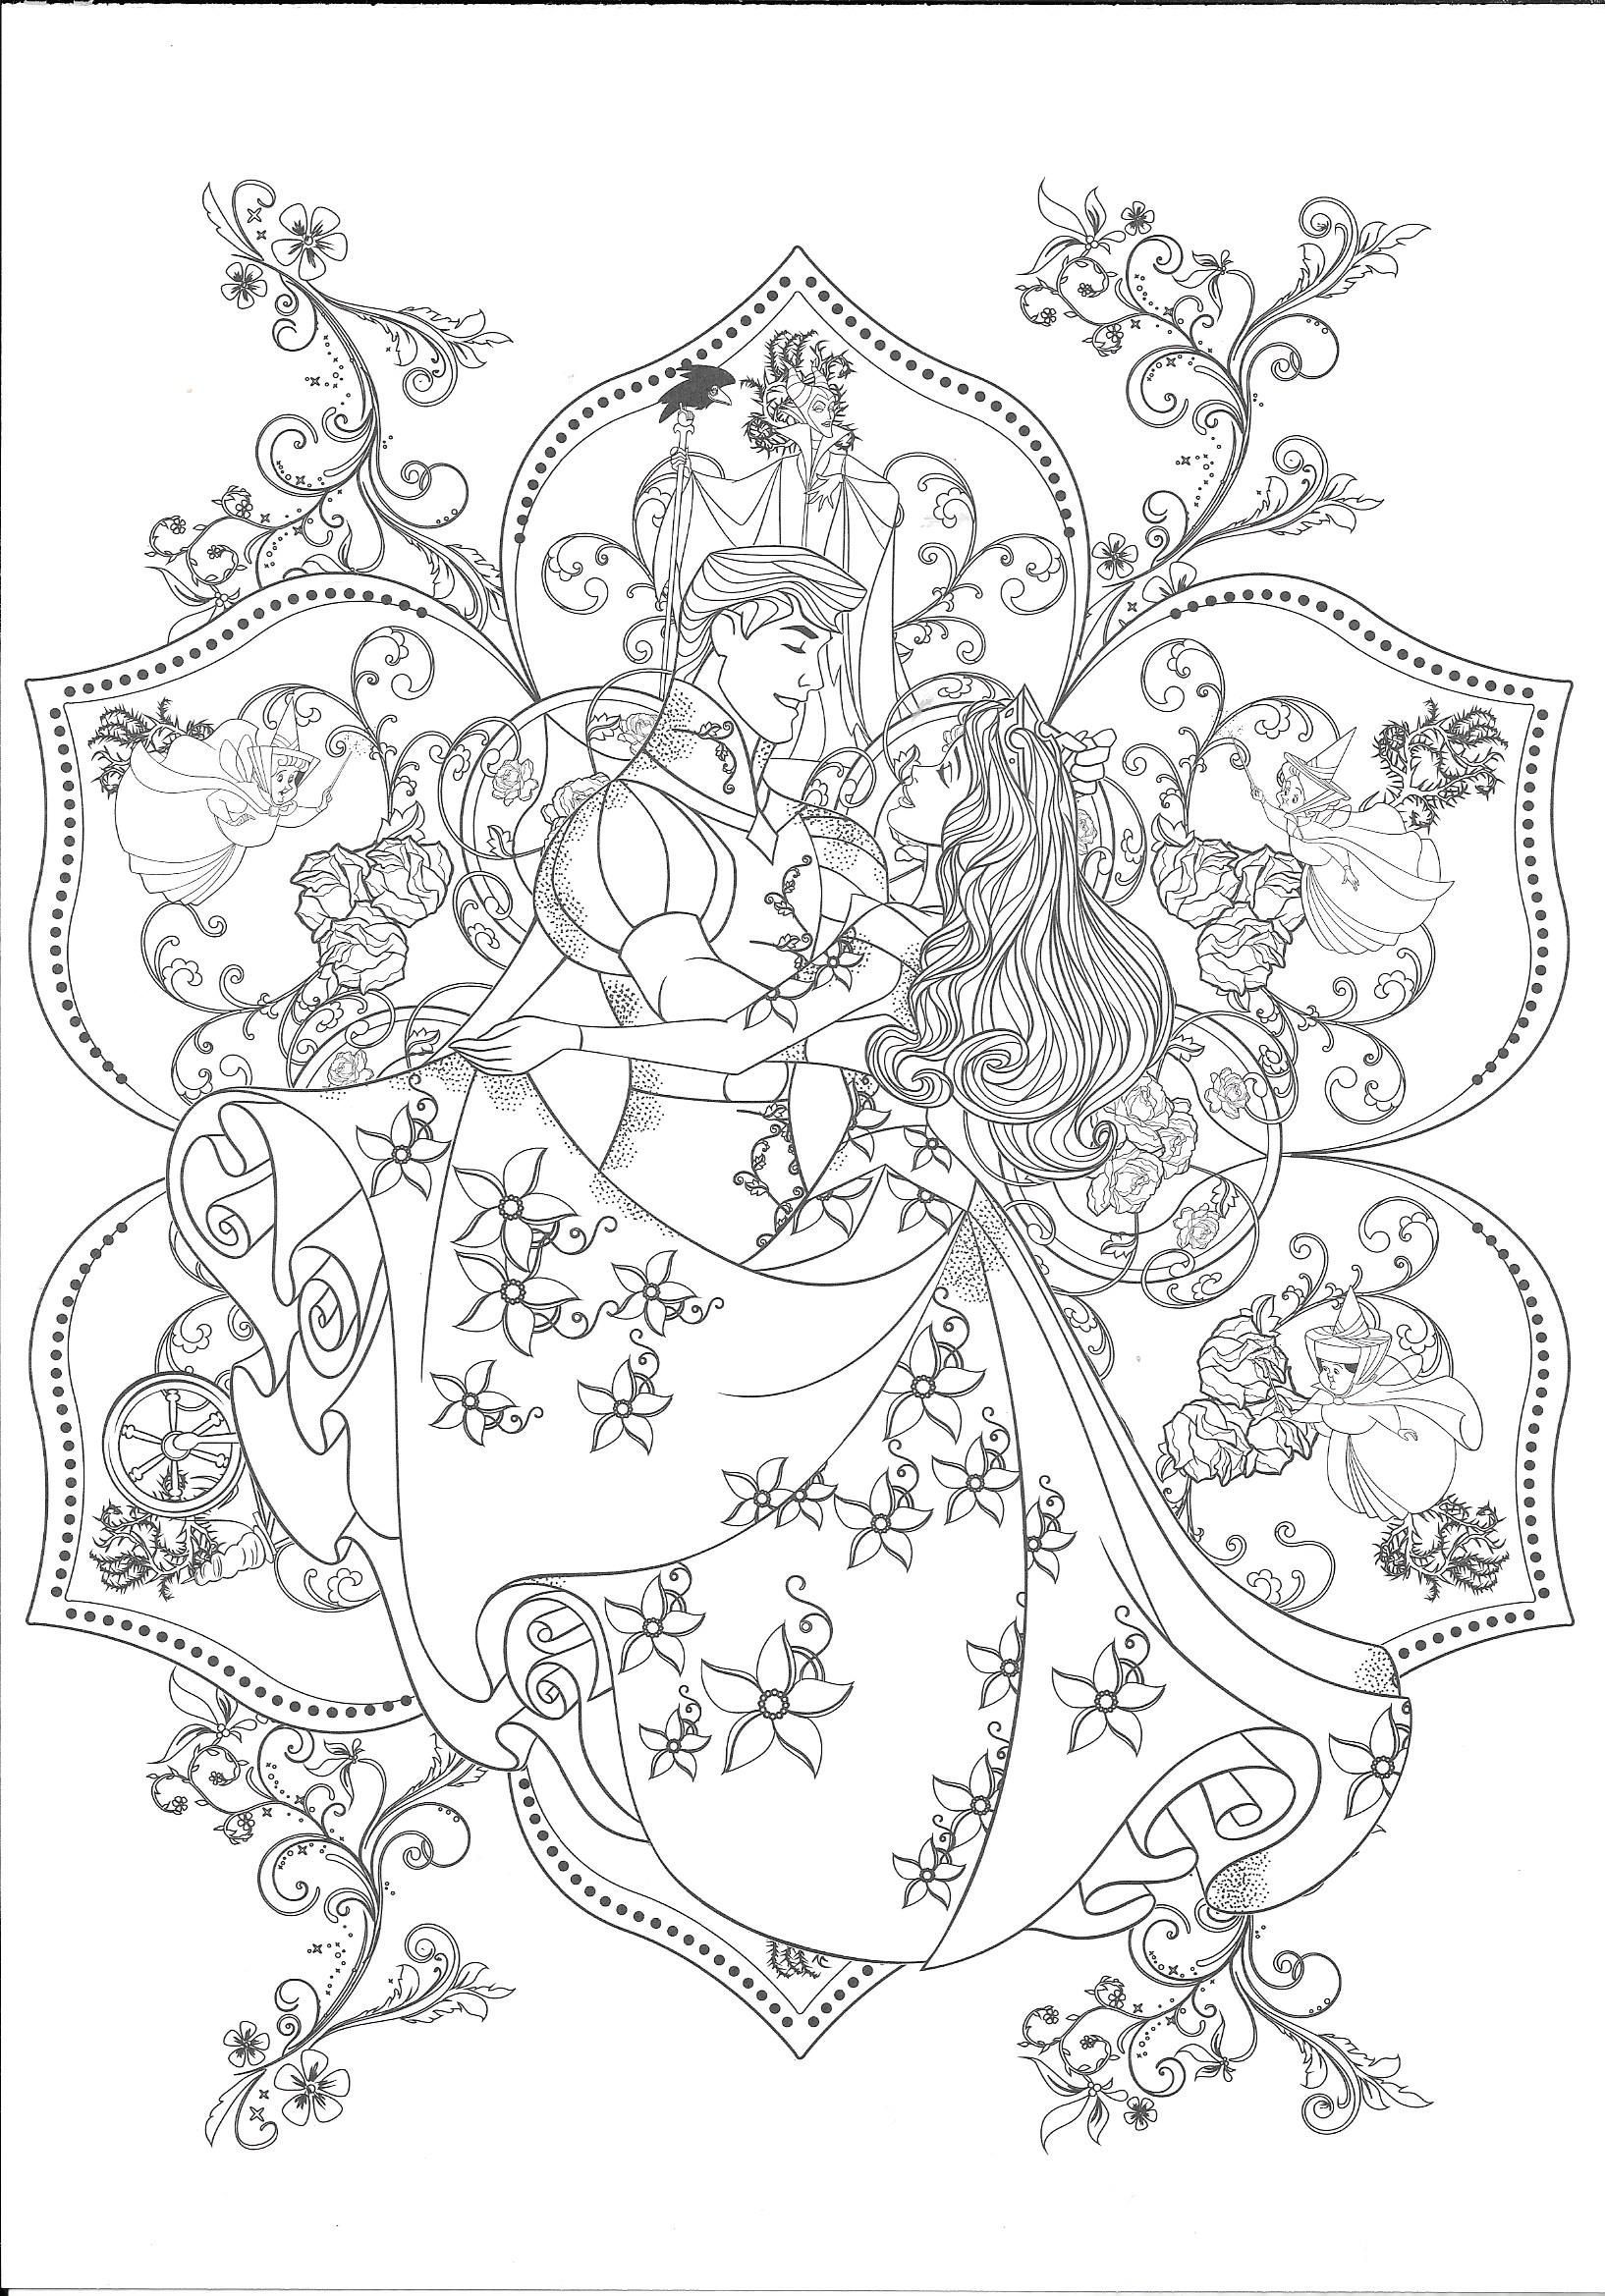 Coloring Disney Coloring Pages Printables Disney Coloring Pages Sleeping Beauty Coloring Pages